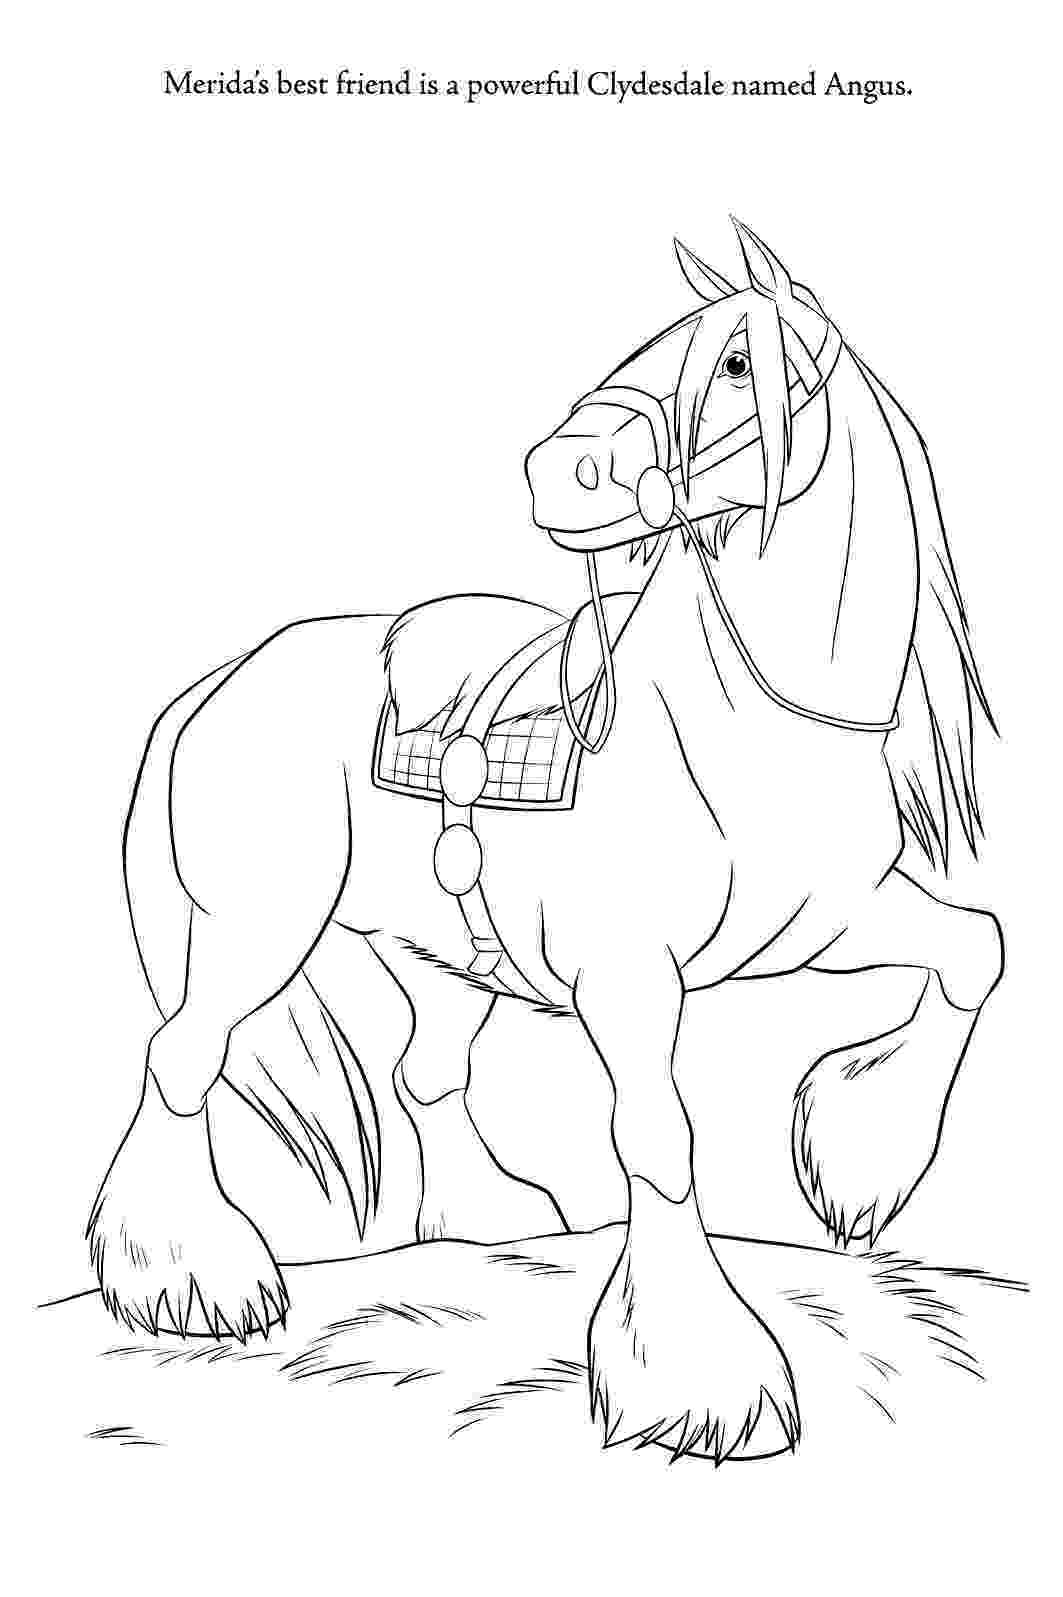 brave coloring pages for kids brave coloring pages best coloring pages for kids brave for pages coloring kids